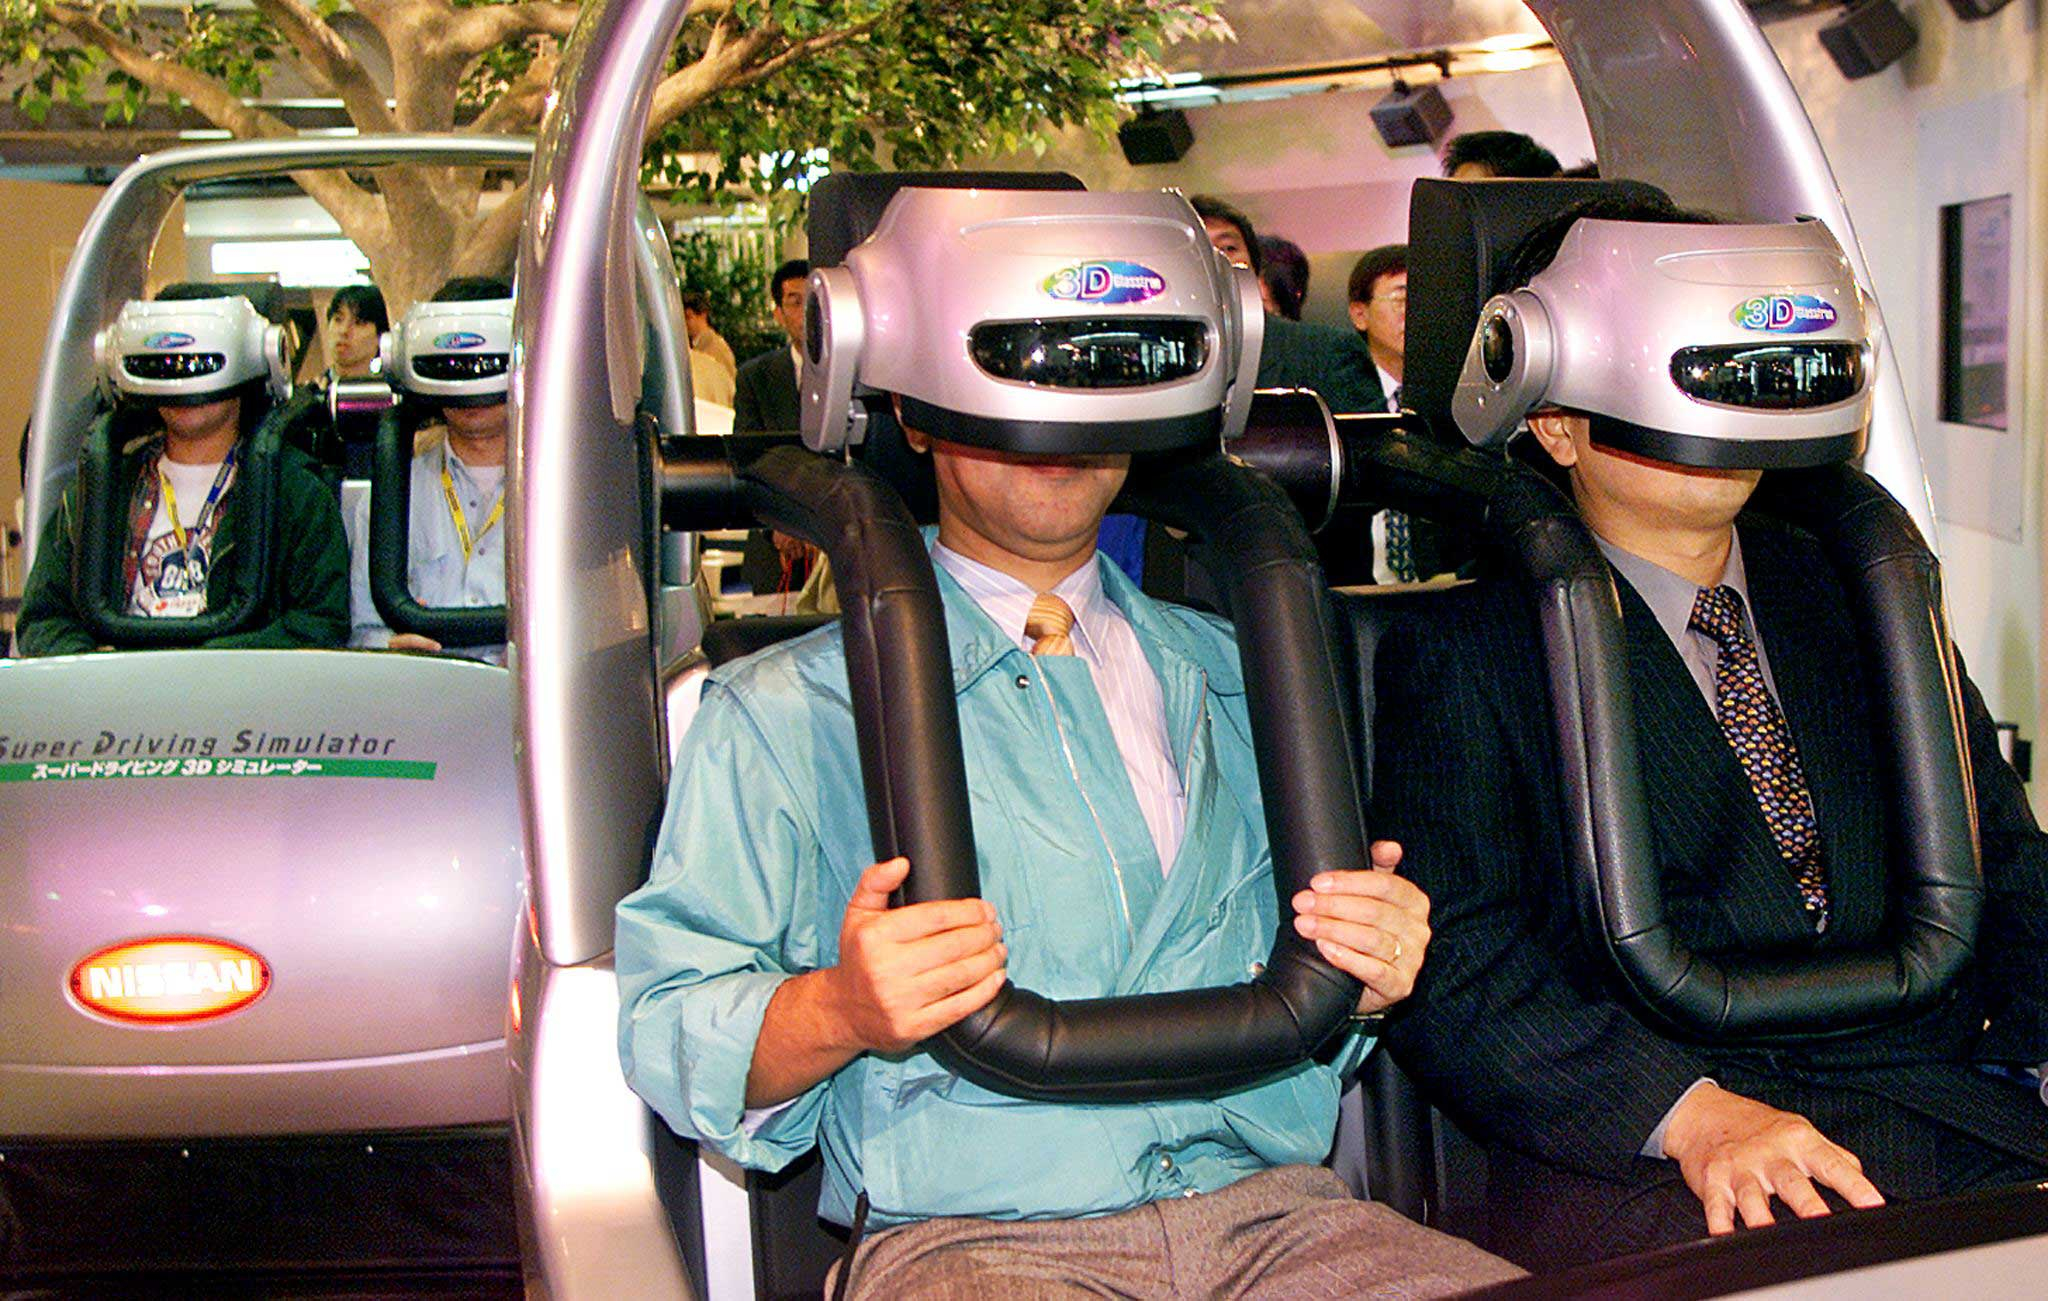 <strong>1999</strong>                                                                      Visitors enjoy virtual reality driving with 3-D goggles and driving simulators for the presentation of Japan's automaker Nissan at the Tokyo Motor Show in Tokyo.